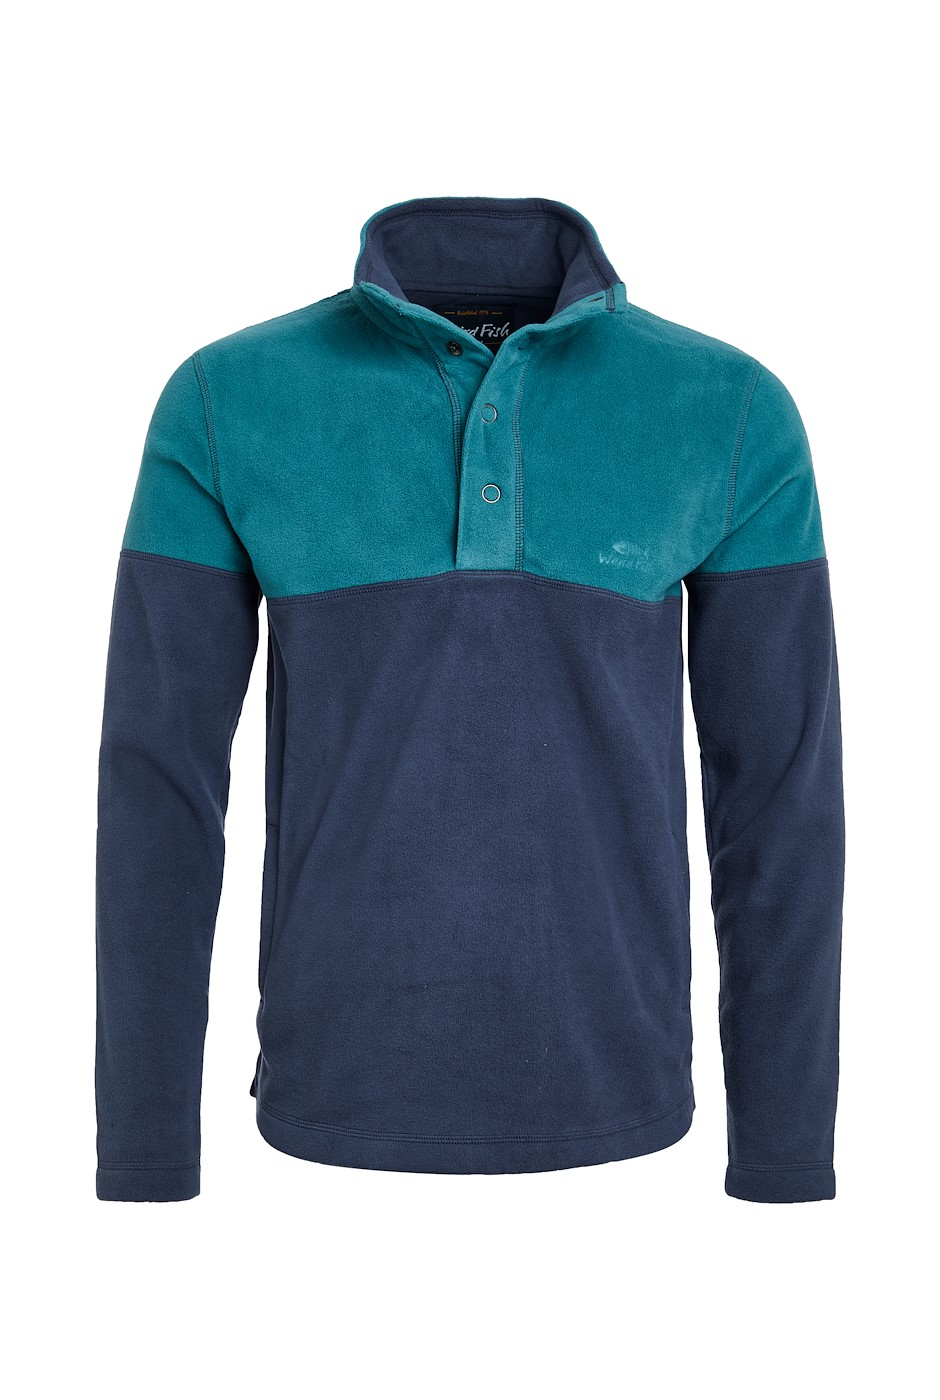 Denzel Recycled Embossed Microfleece Navy